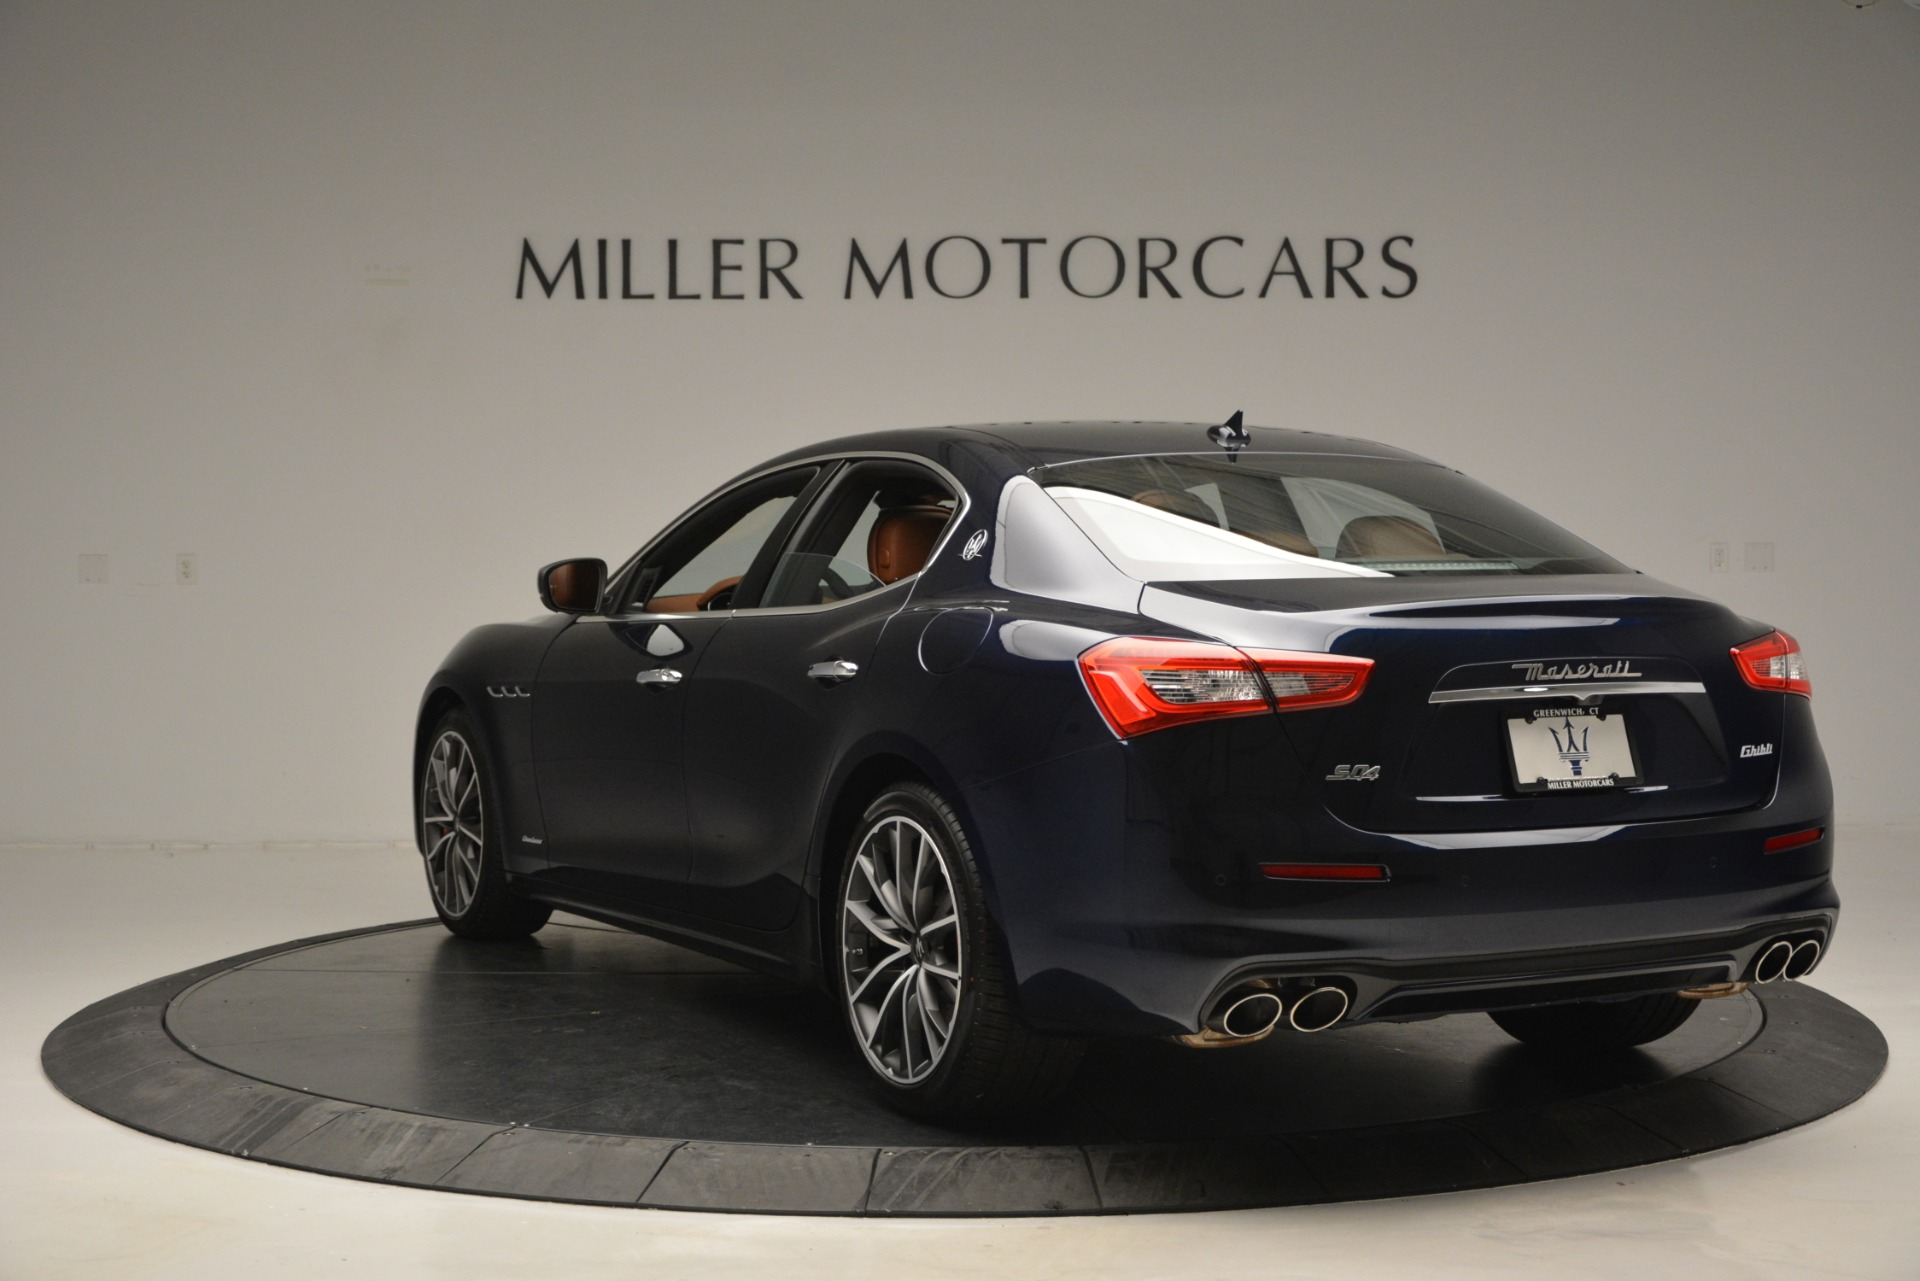 New 2019 Maserati Ghibli S Q4 GranLusso For Sale In Westport, CT 2882_p7